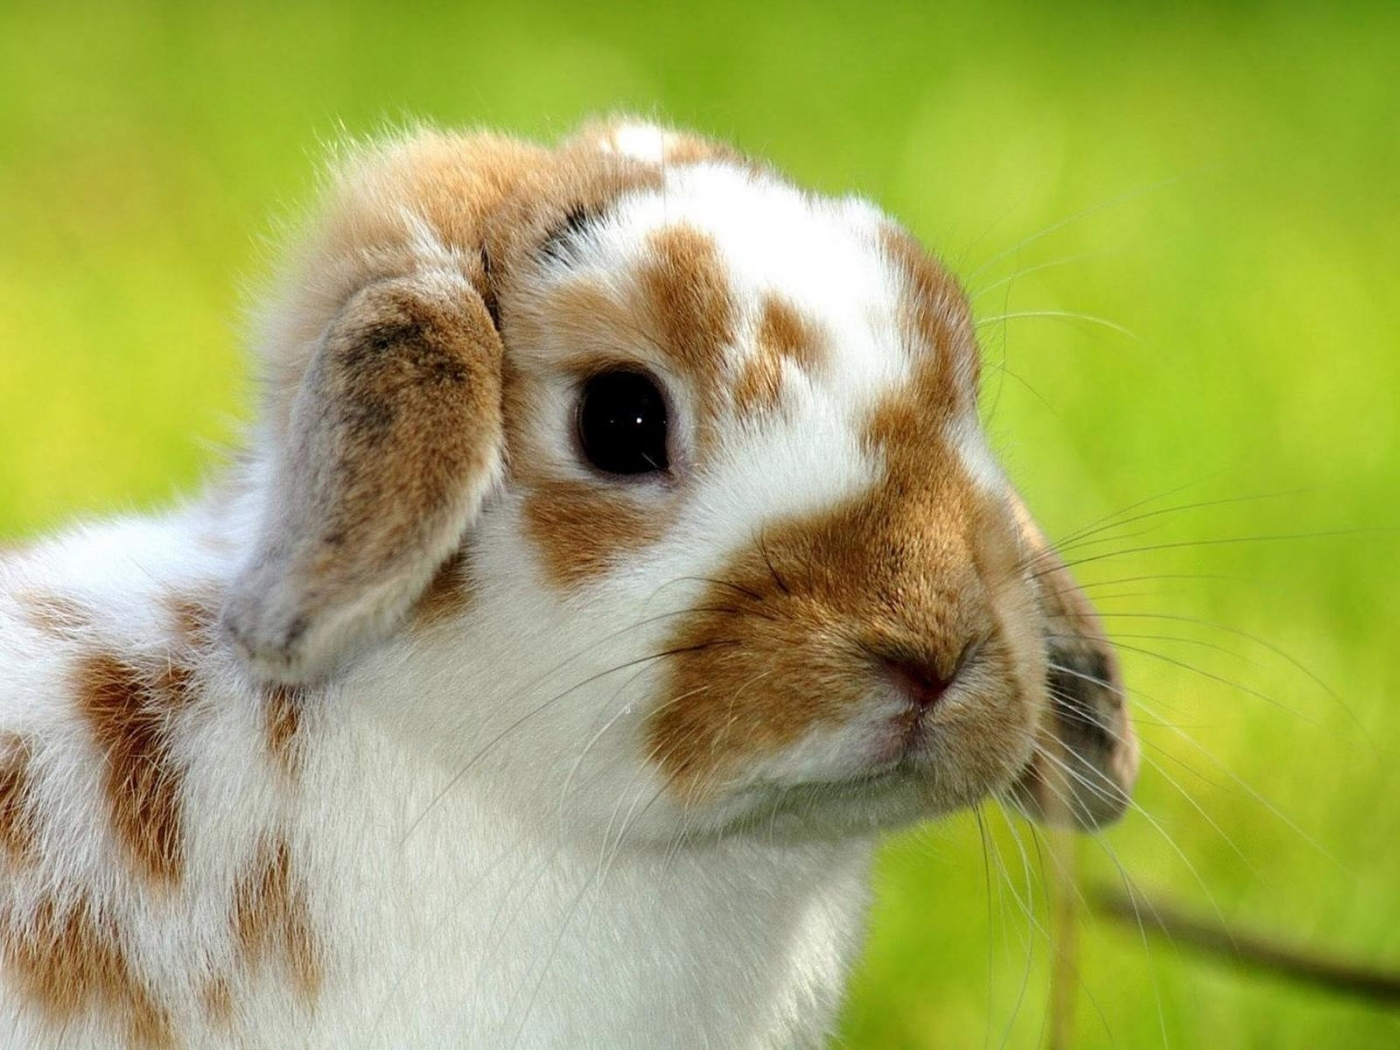 48746 download wallpaper Animals, Rabbits screensavers and pictures for free